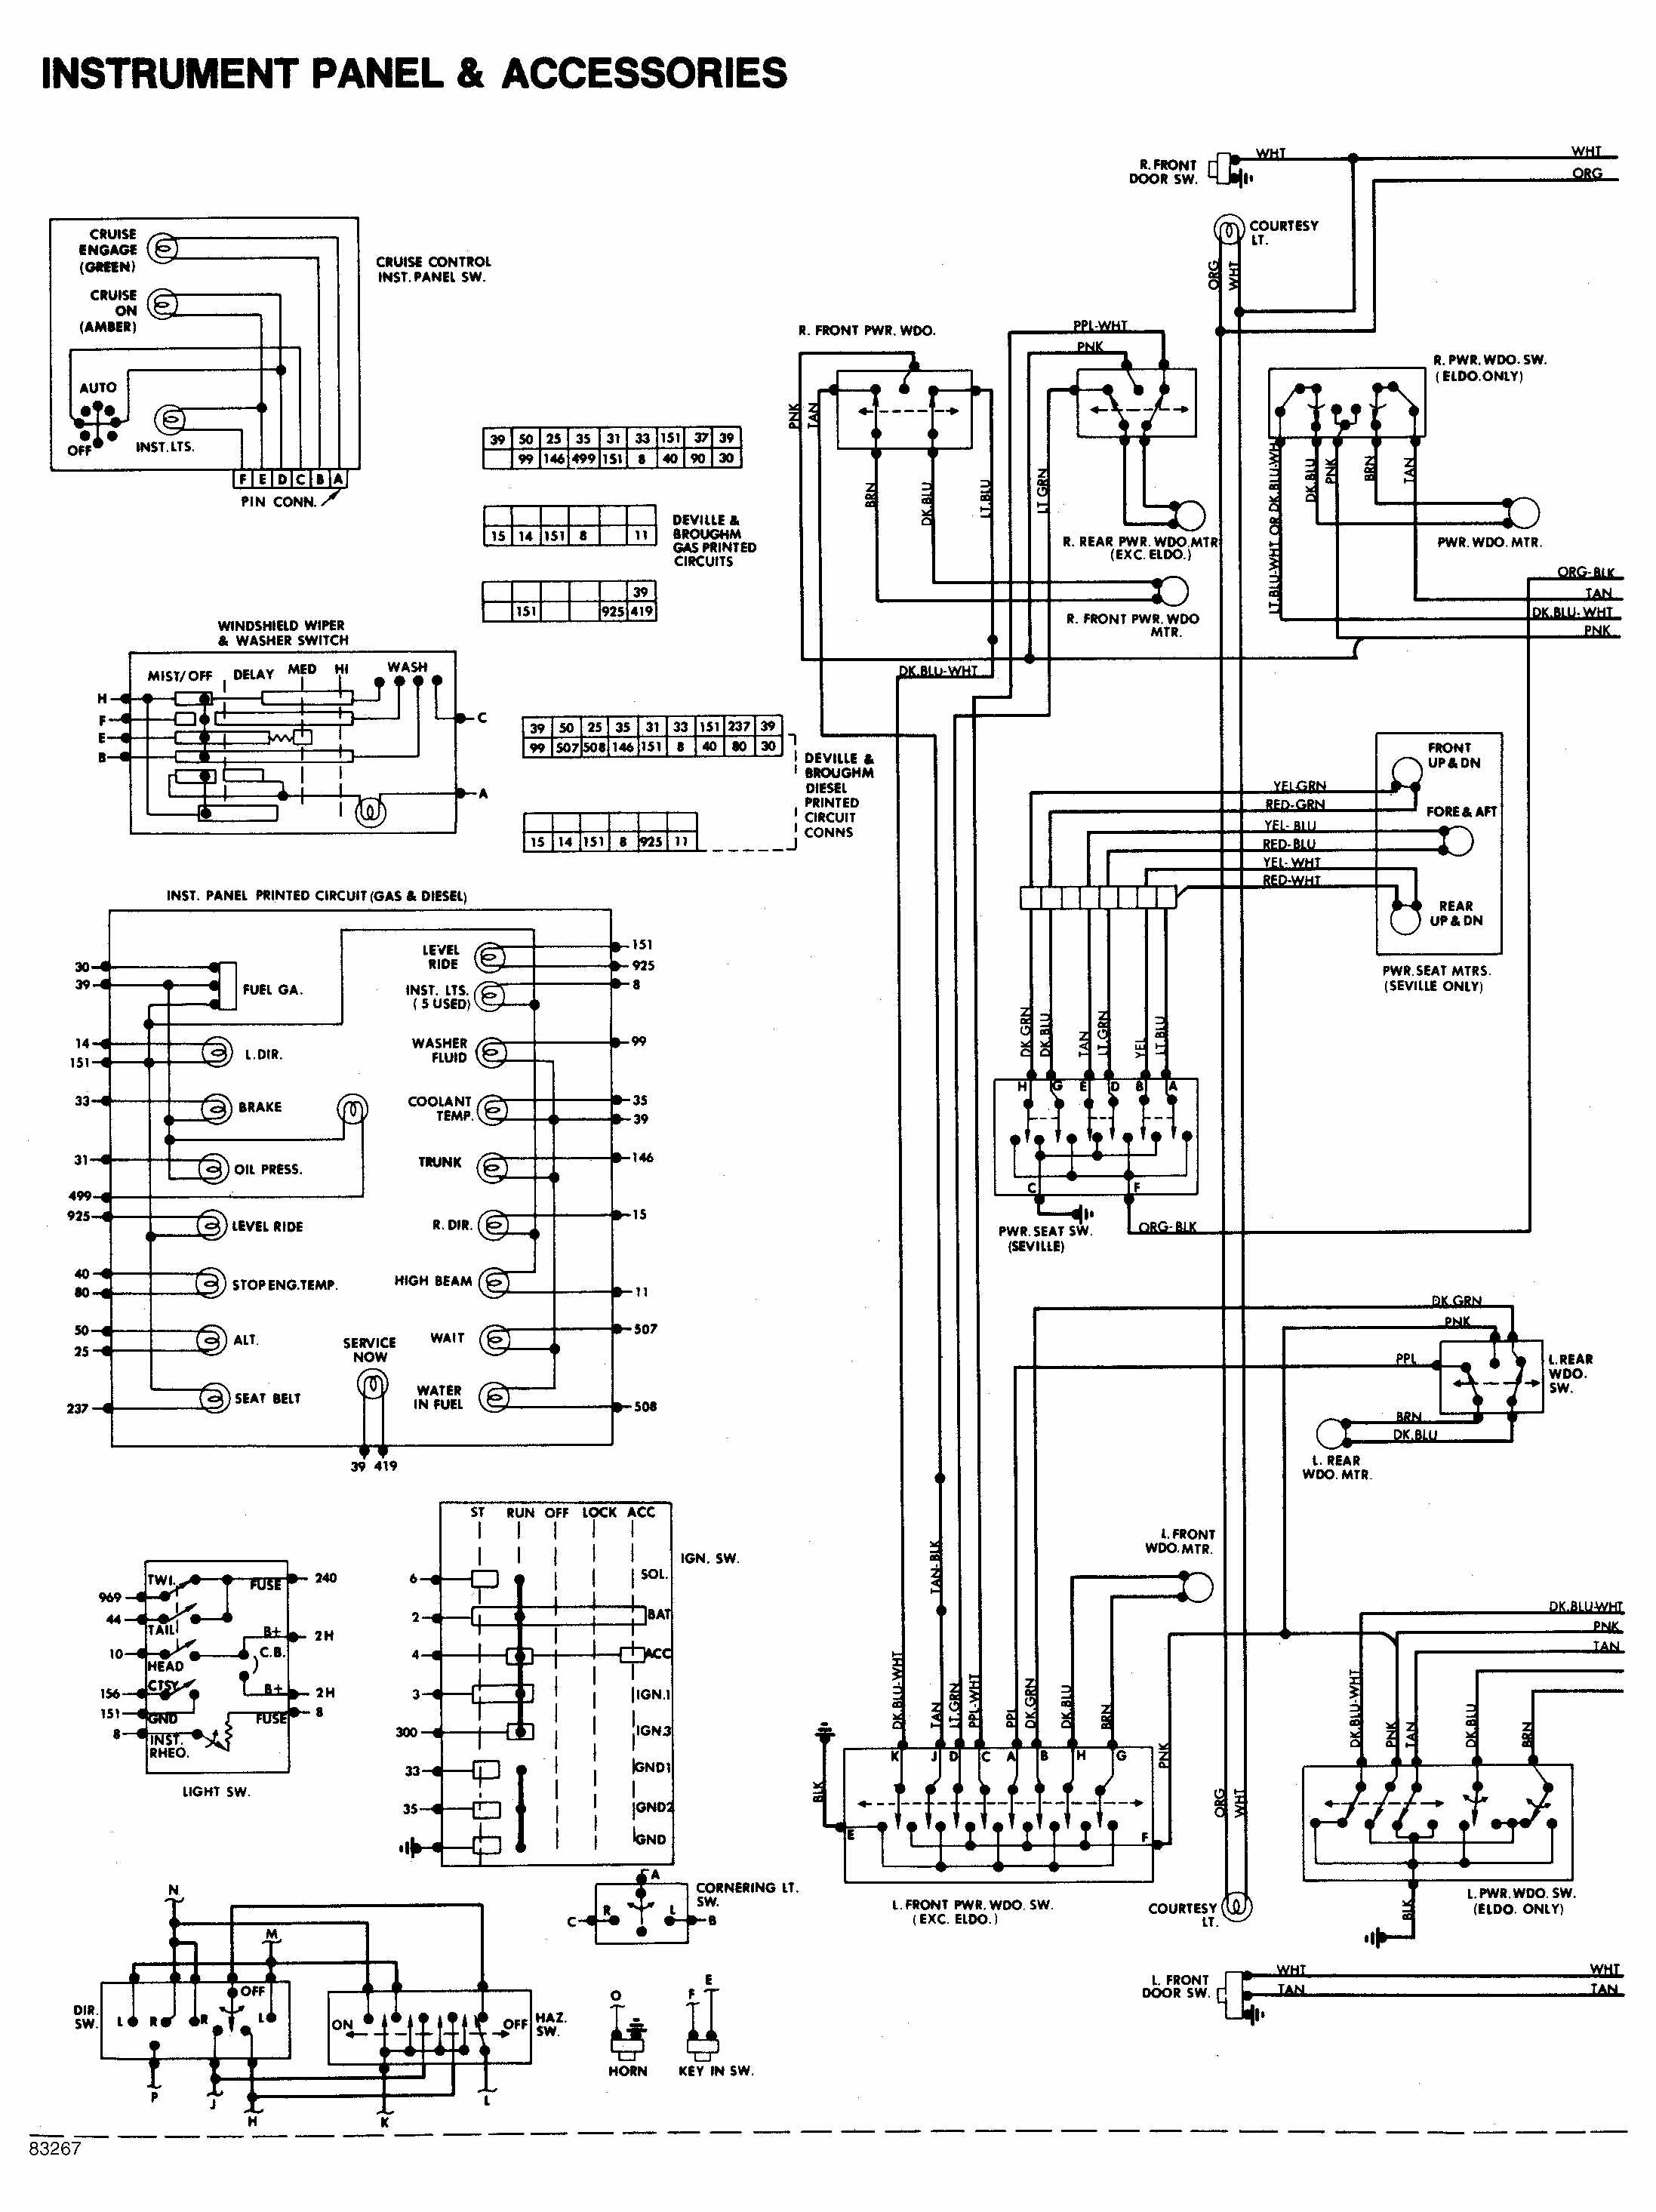 1971 Chevelle Wiring Schematics Library Fuse Box Diagram Chevy Diagrams Rh Wizard Com El Camino Dash